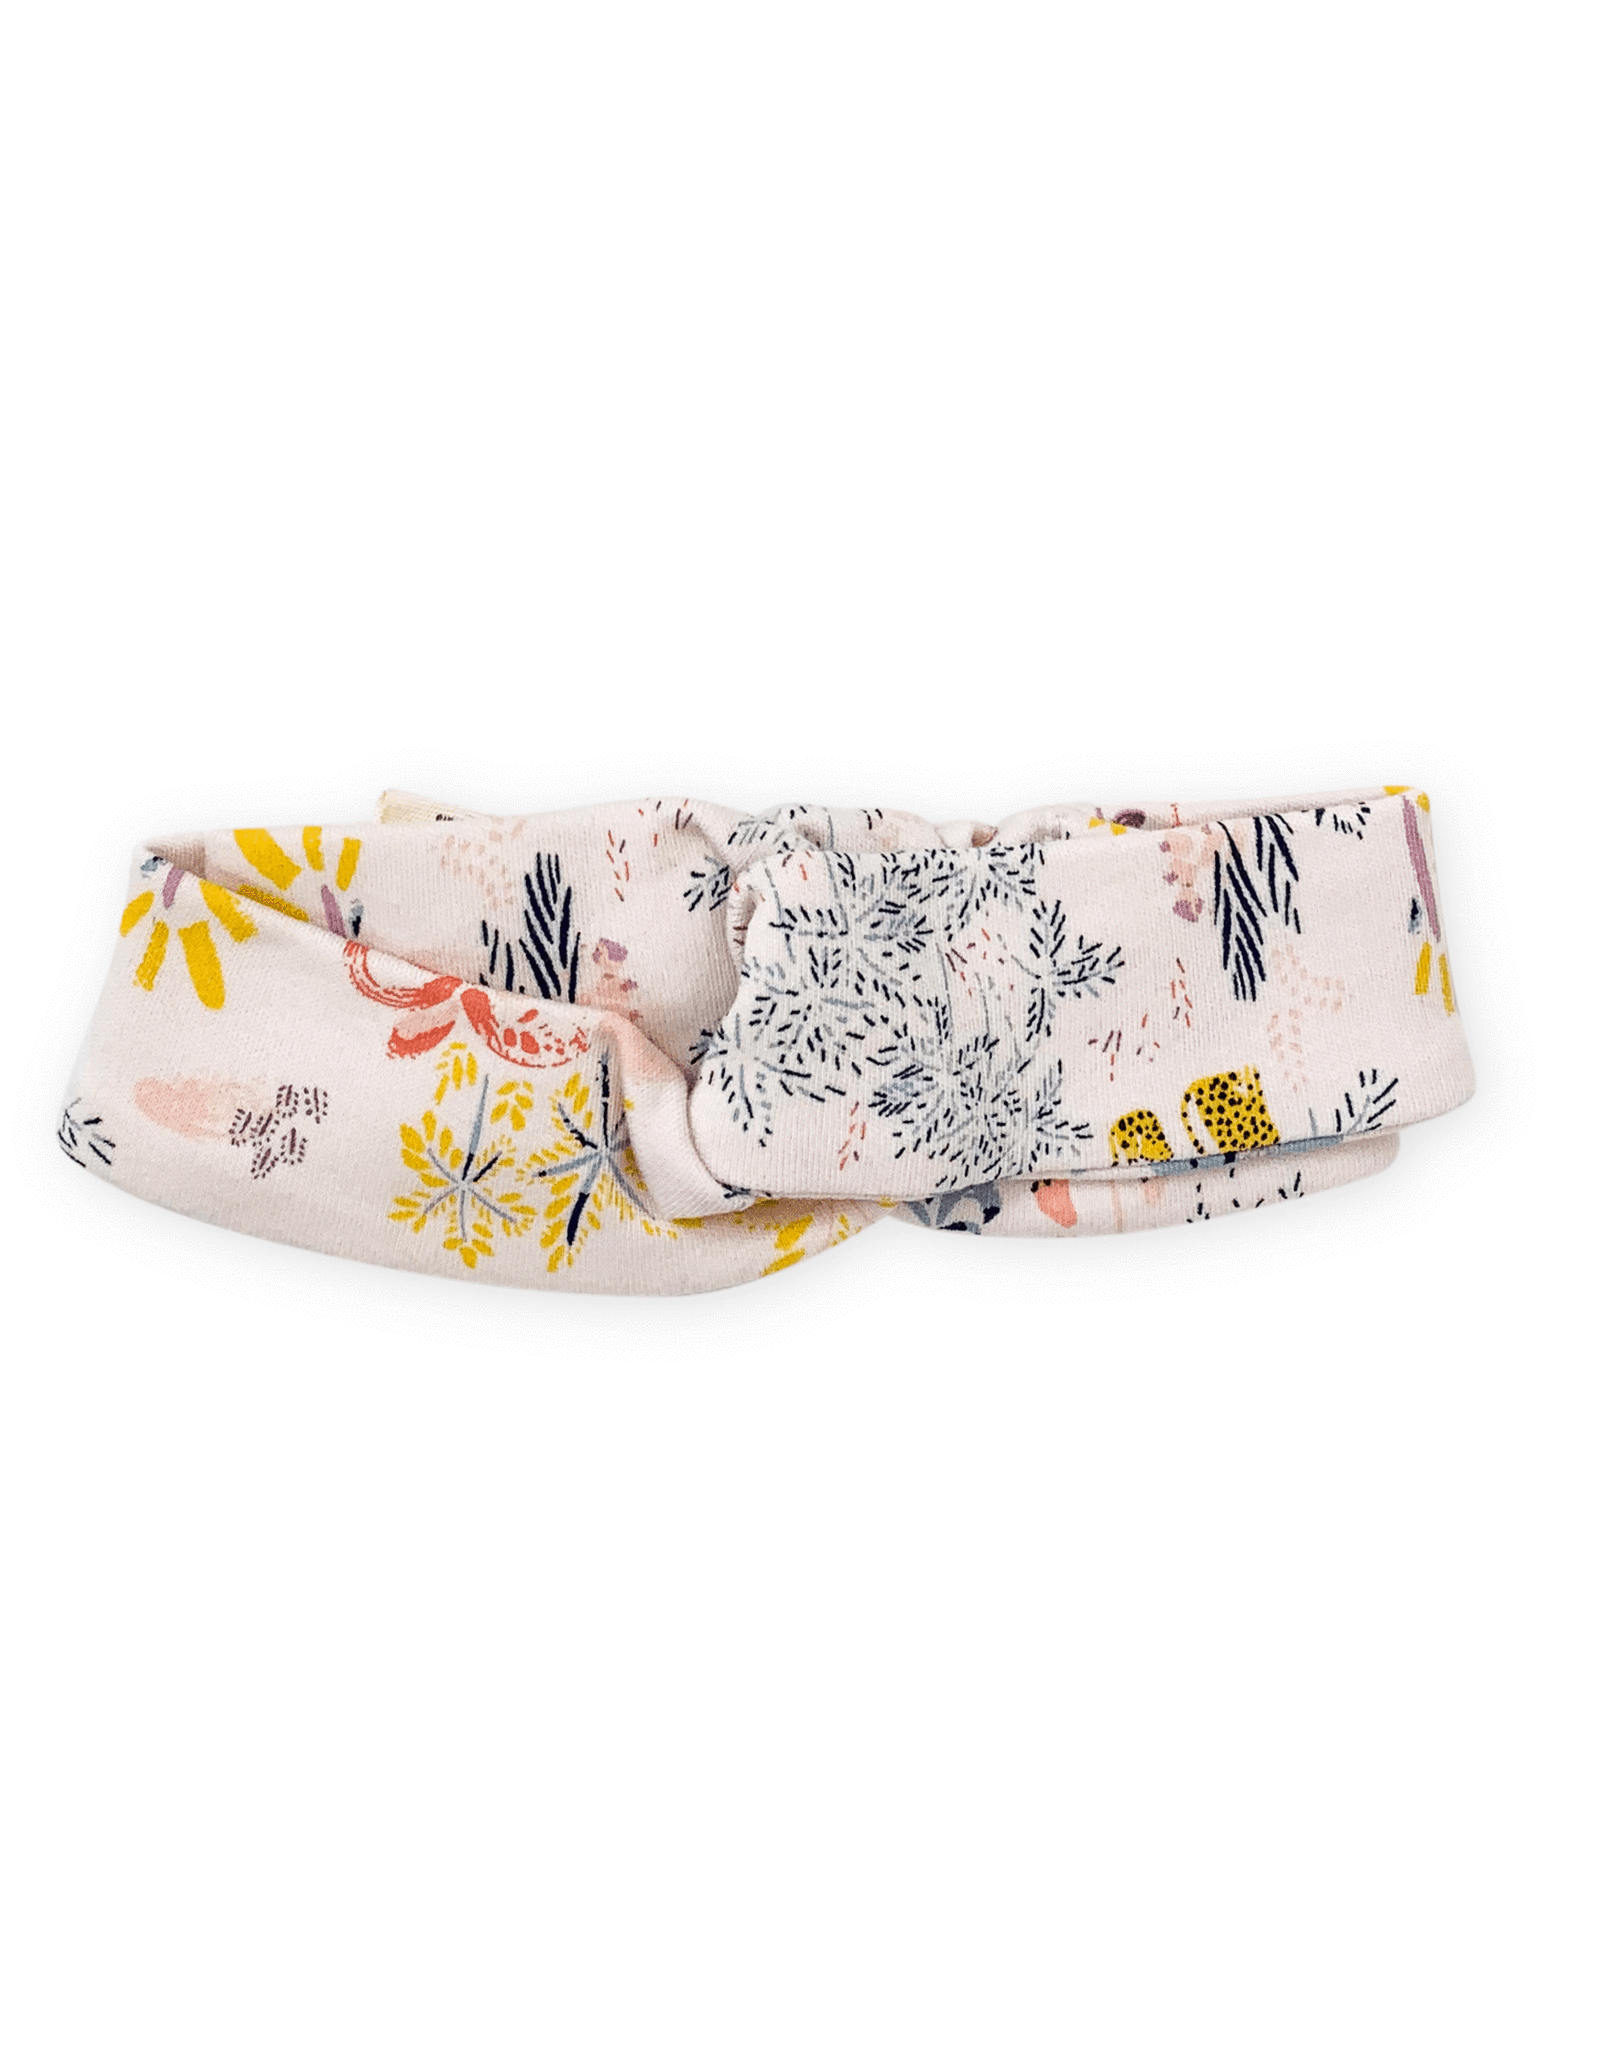 Finn & Emma Savanna Headband